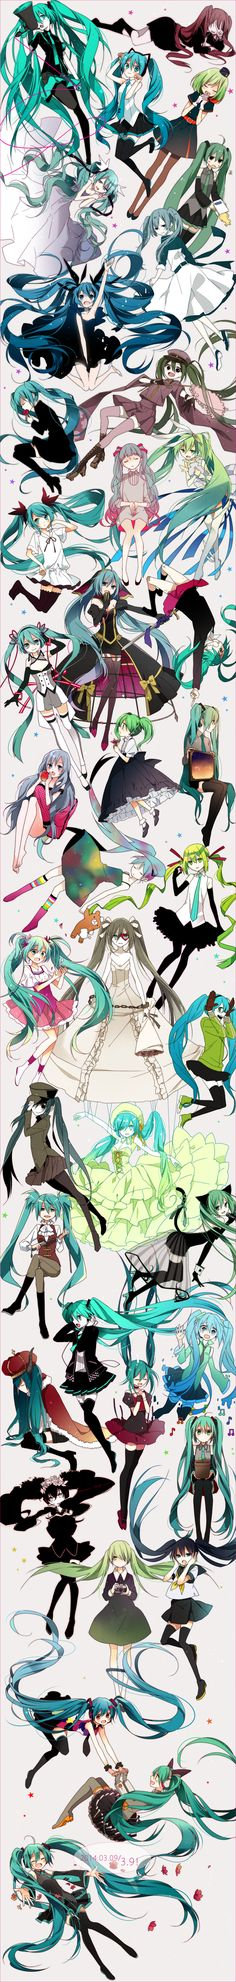 Vocaloid Oh Meh Gerd THIS IS THE BEST THING EVA >~< I can name all these costumes >~< so Kawaii xD